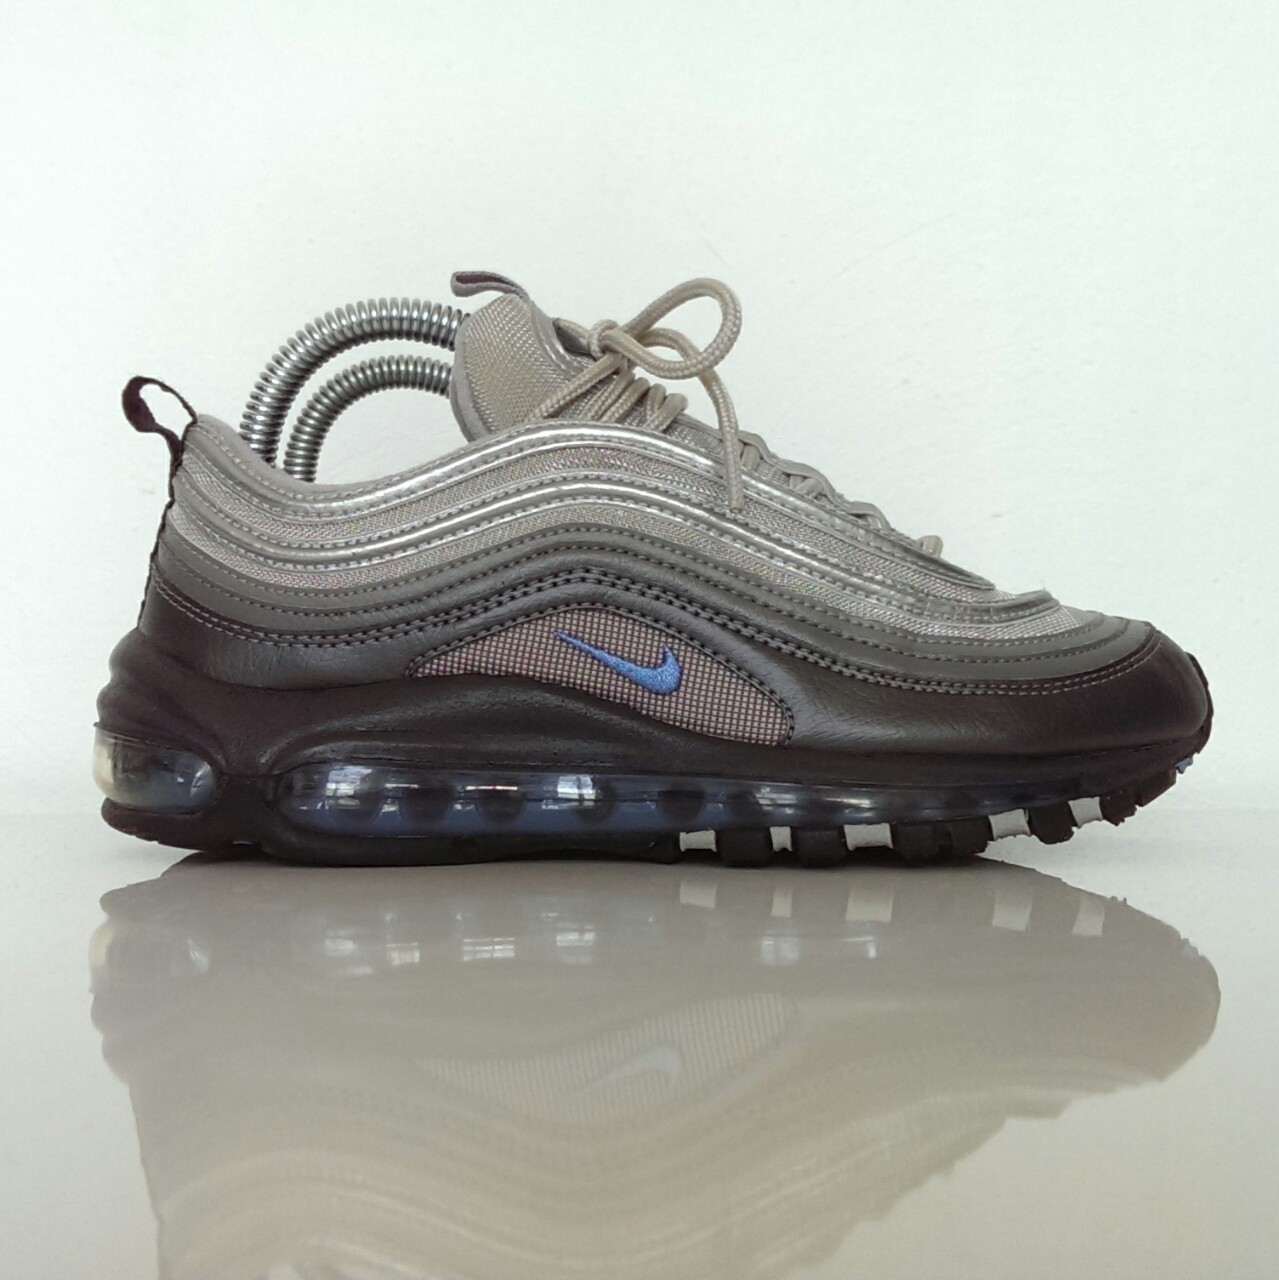 NIKE AIR MAX 97 LIMITED EDITION SIZE Depop